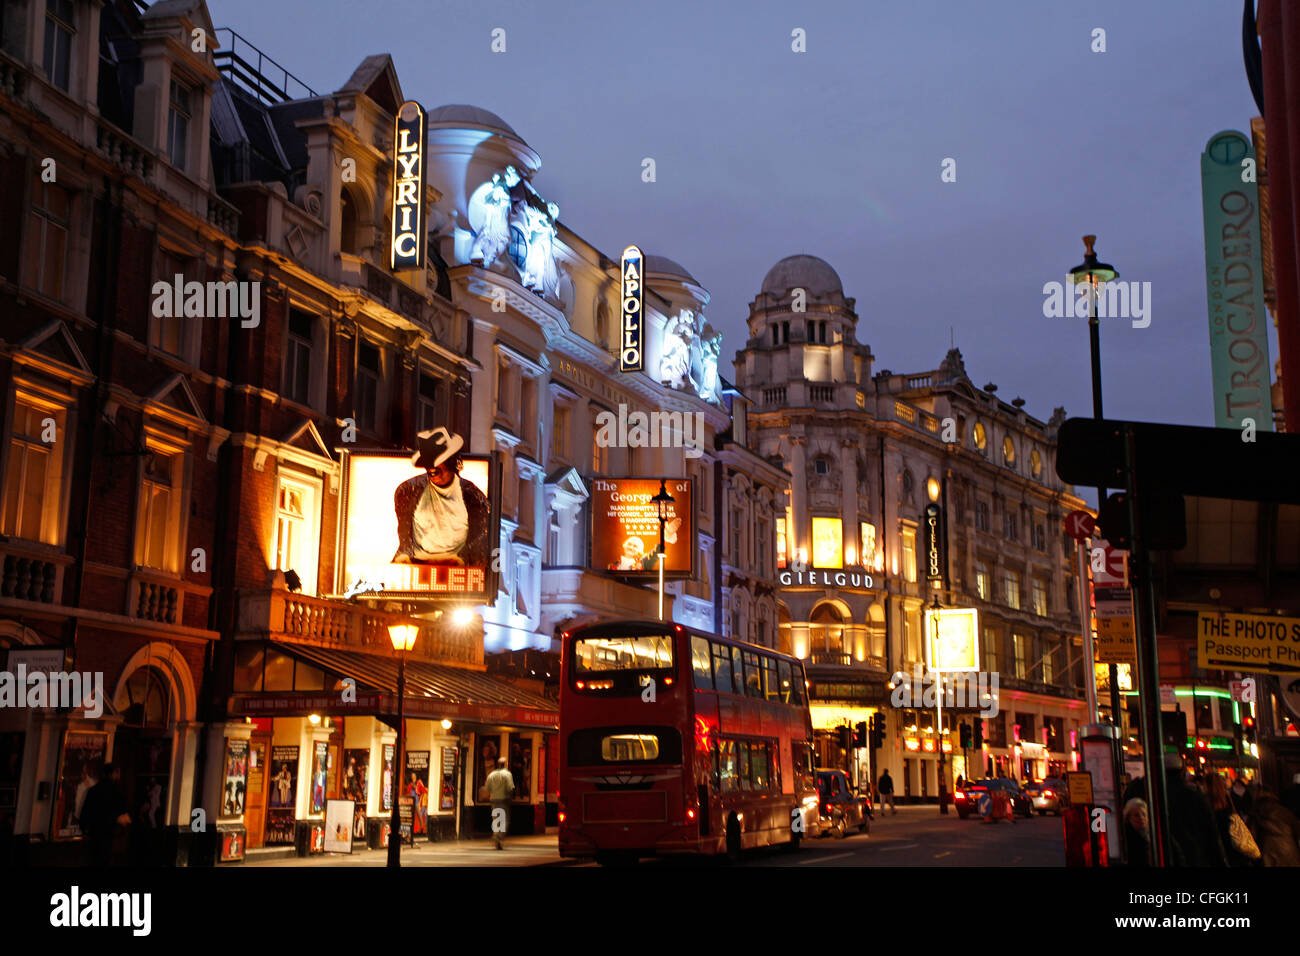 Theatres in Shaftesbury Avenue, the West End of London at  night - theatreland - Stock Image